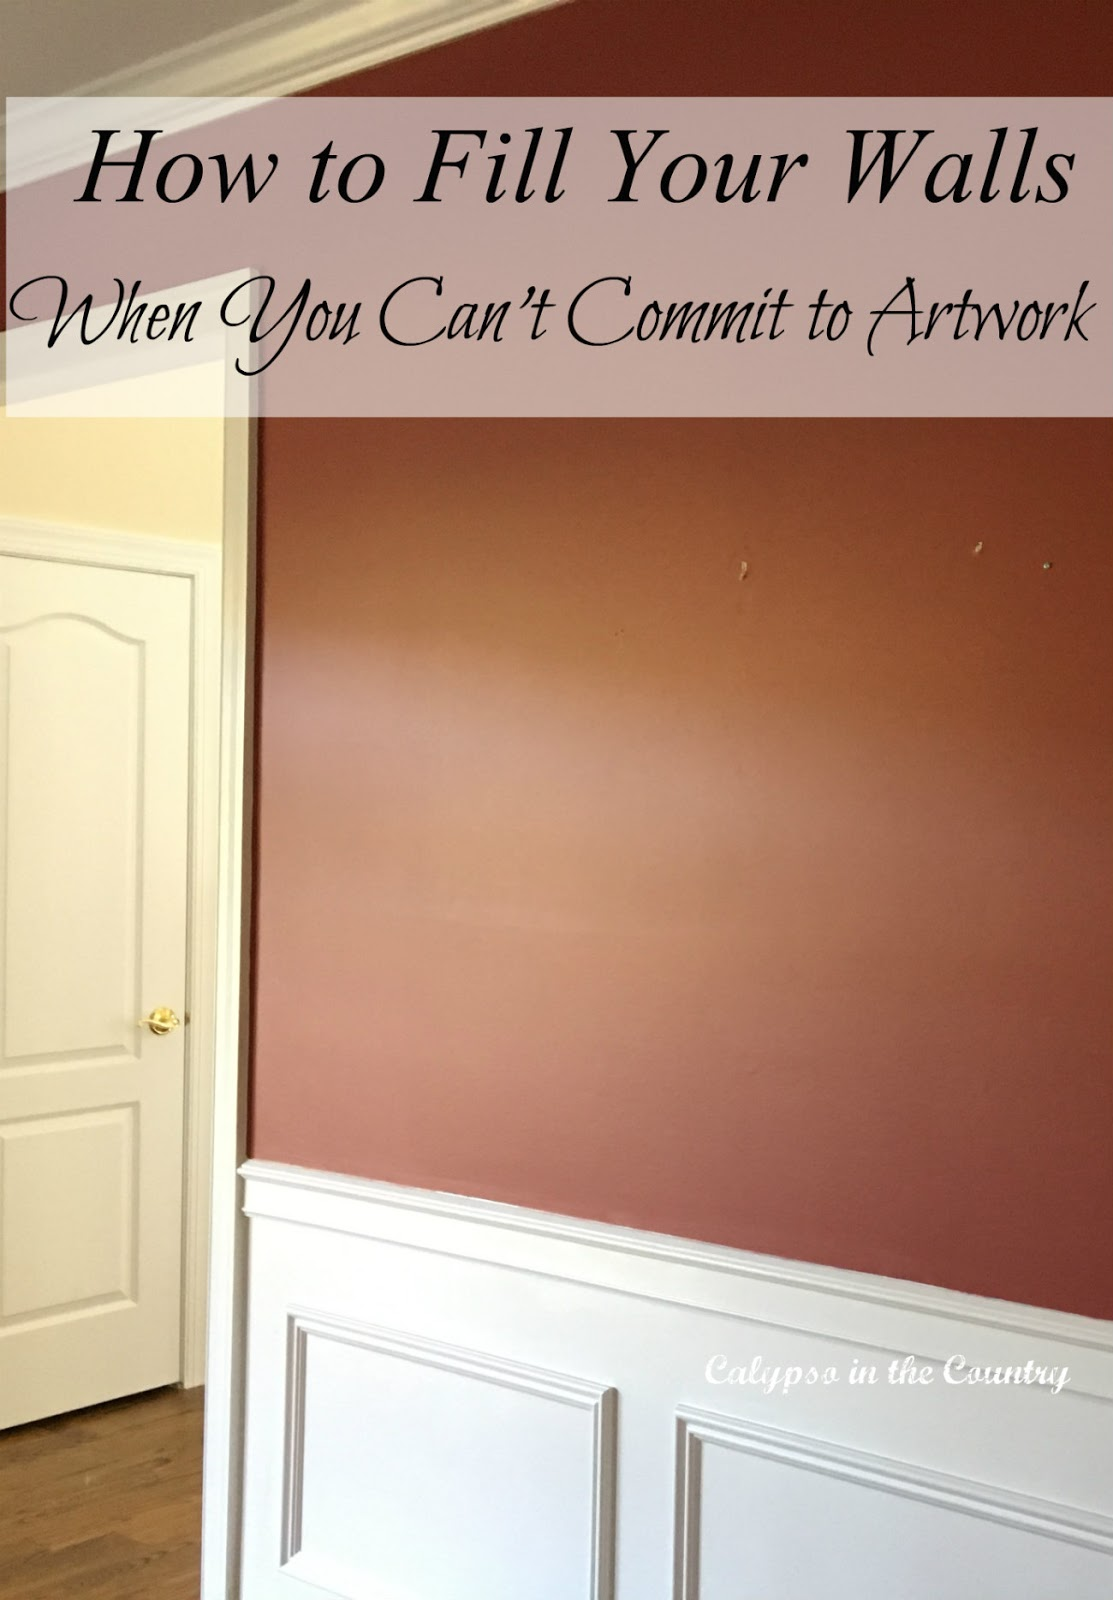 Easy decorating tip for artwork